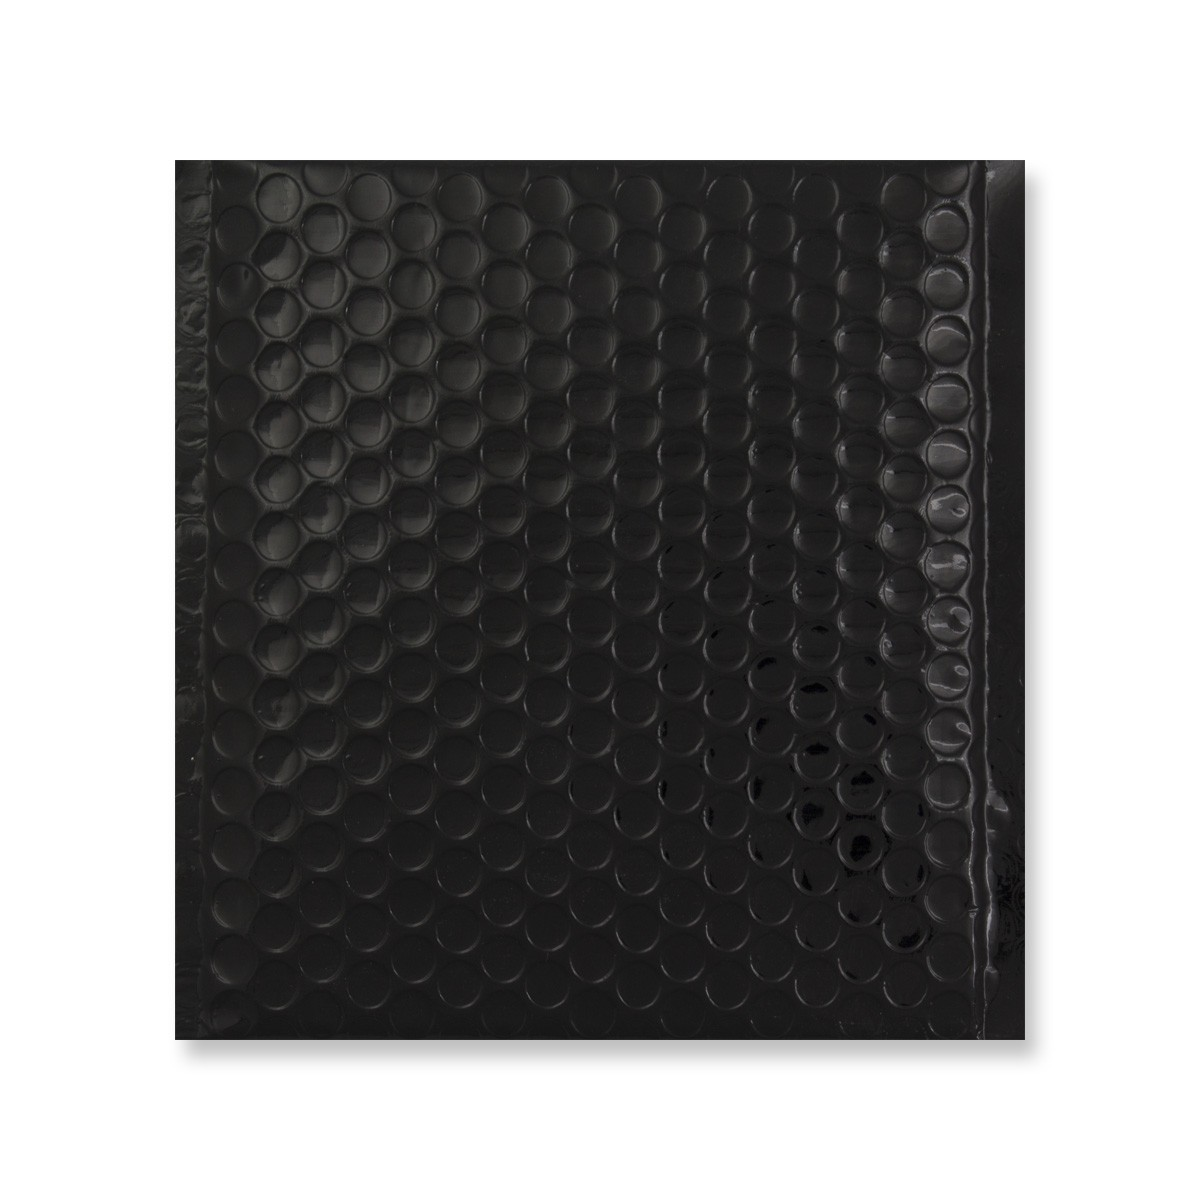 165 x 140mm GLOSS METALLIC BLACK PADDED ENVELOPES